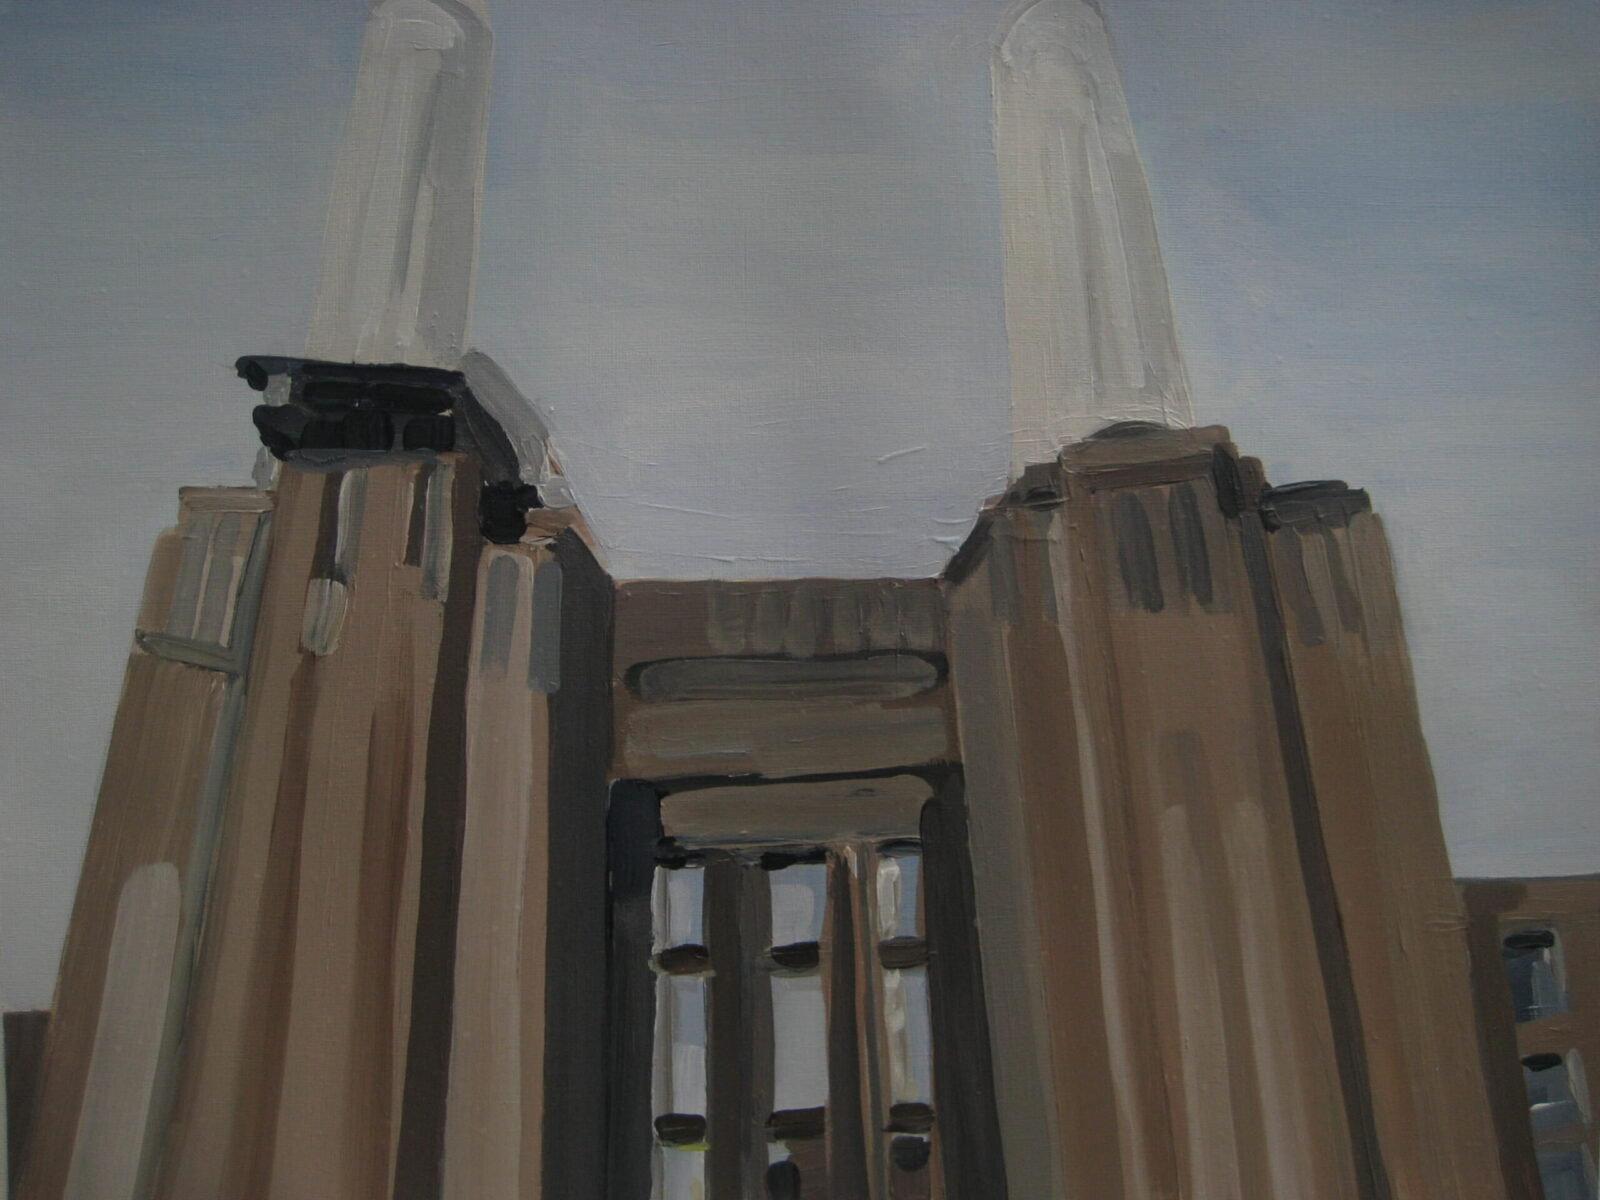 The South Face of Battersea Power Station 2014